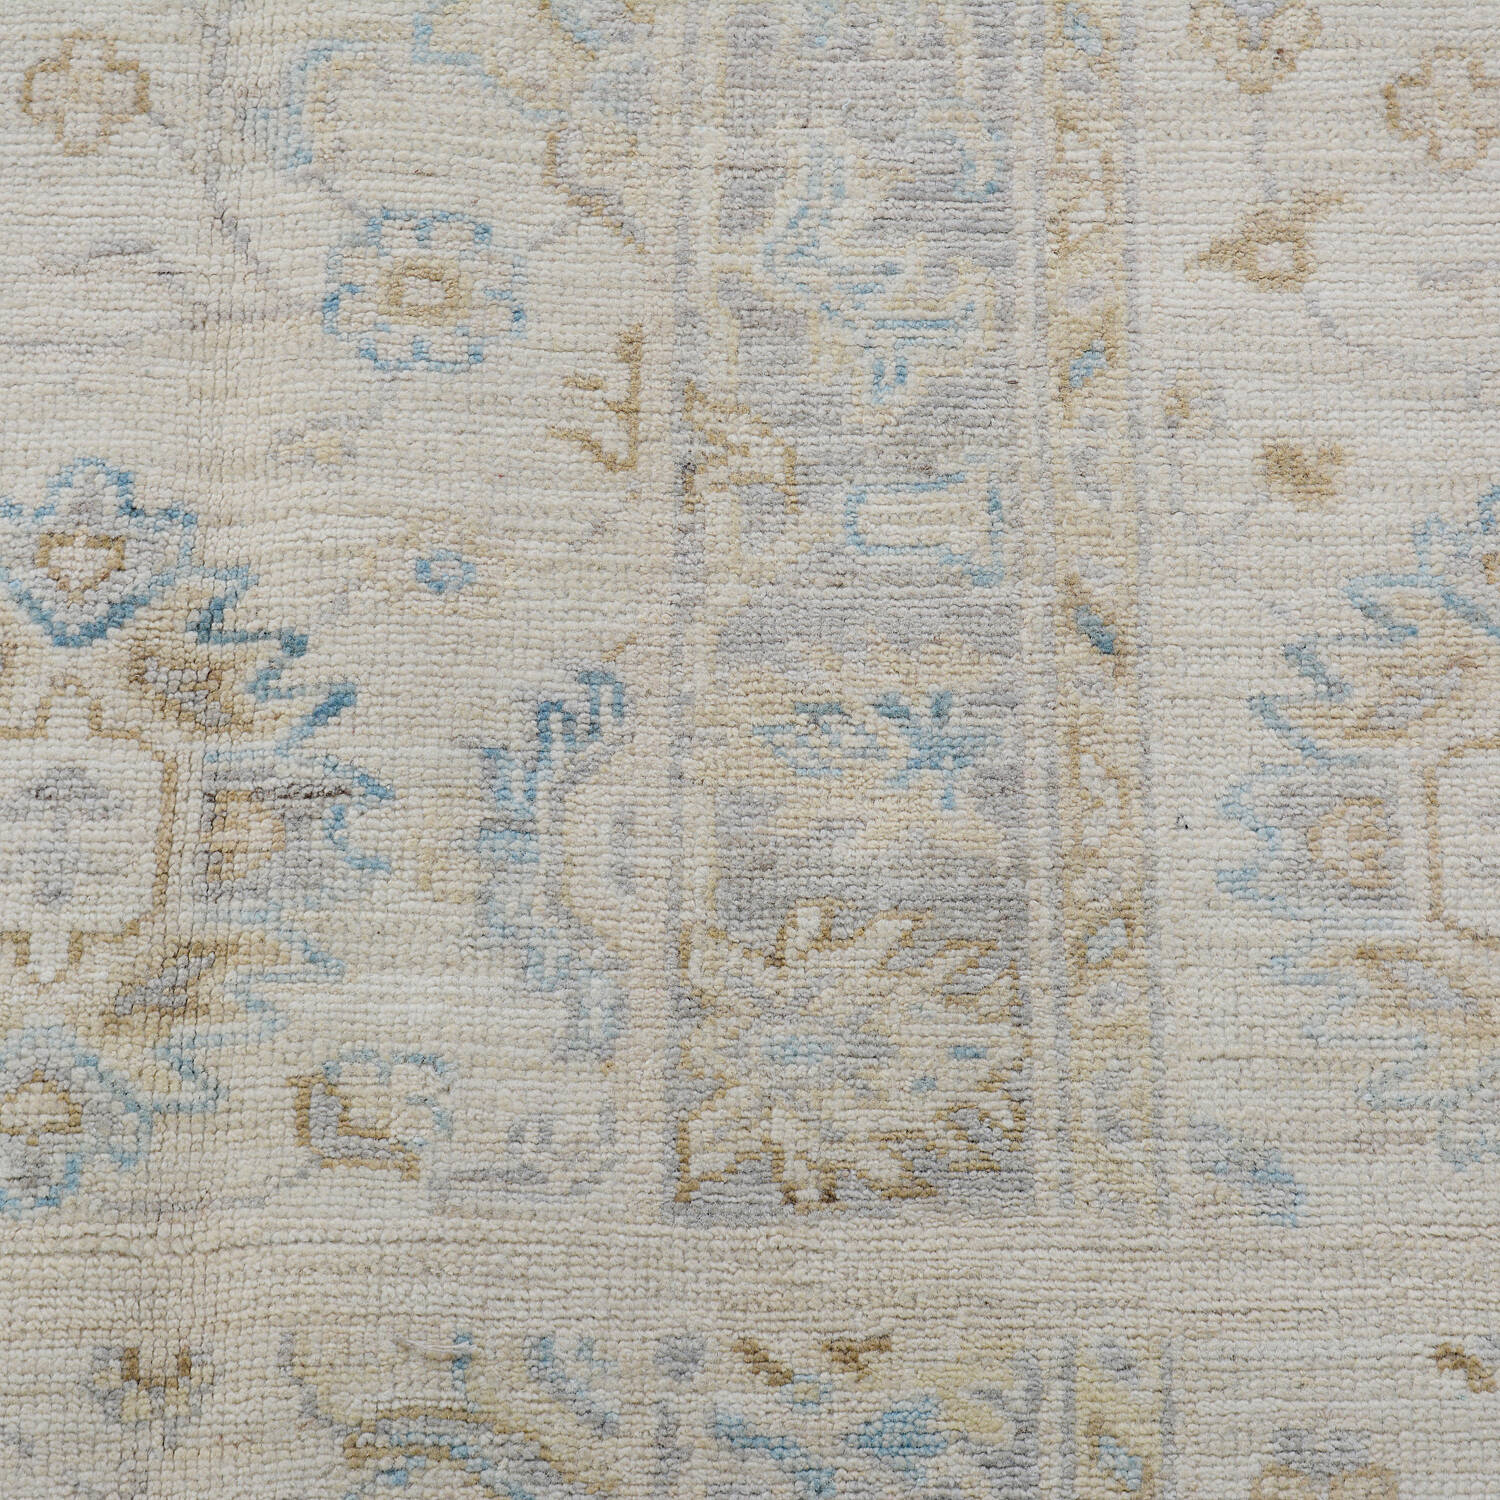 Muted Floral Oushak Turkish Area Rug 5x6 image 4